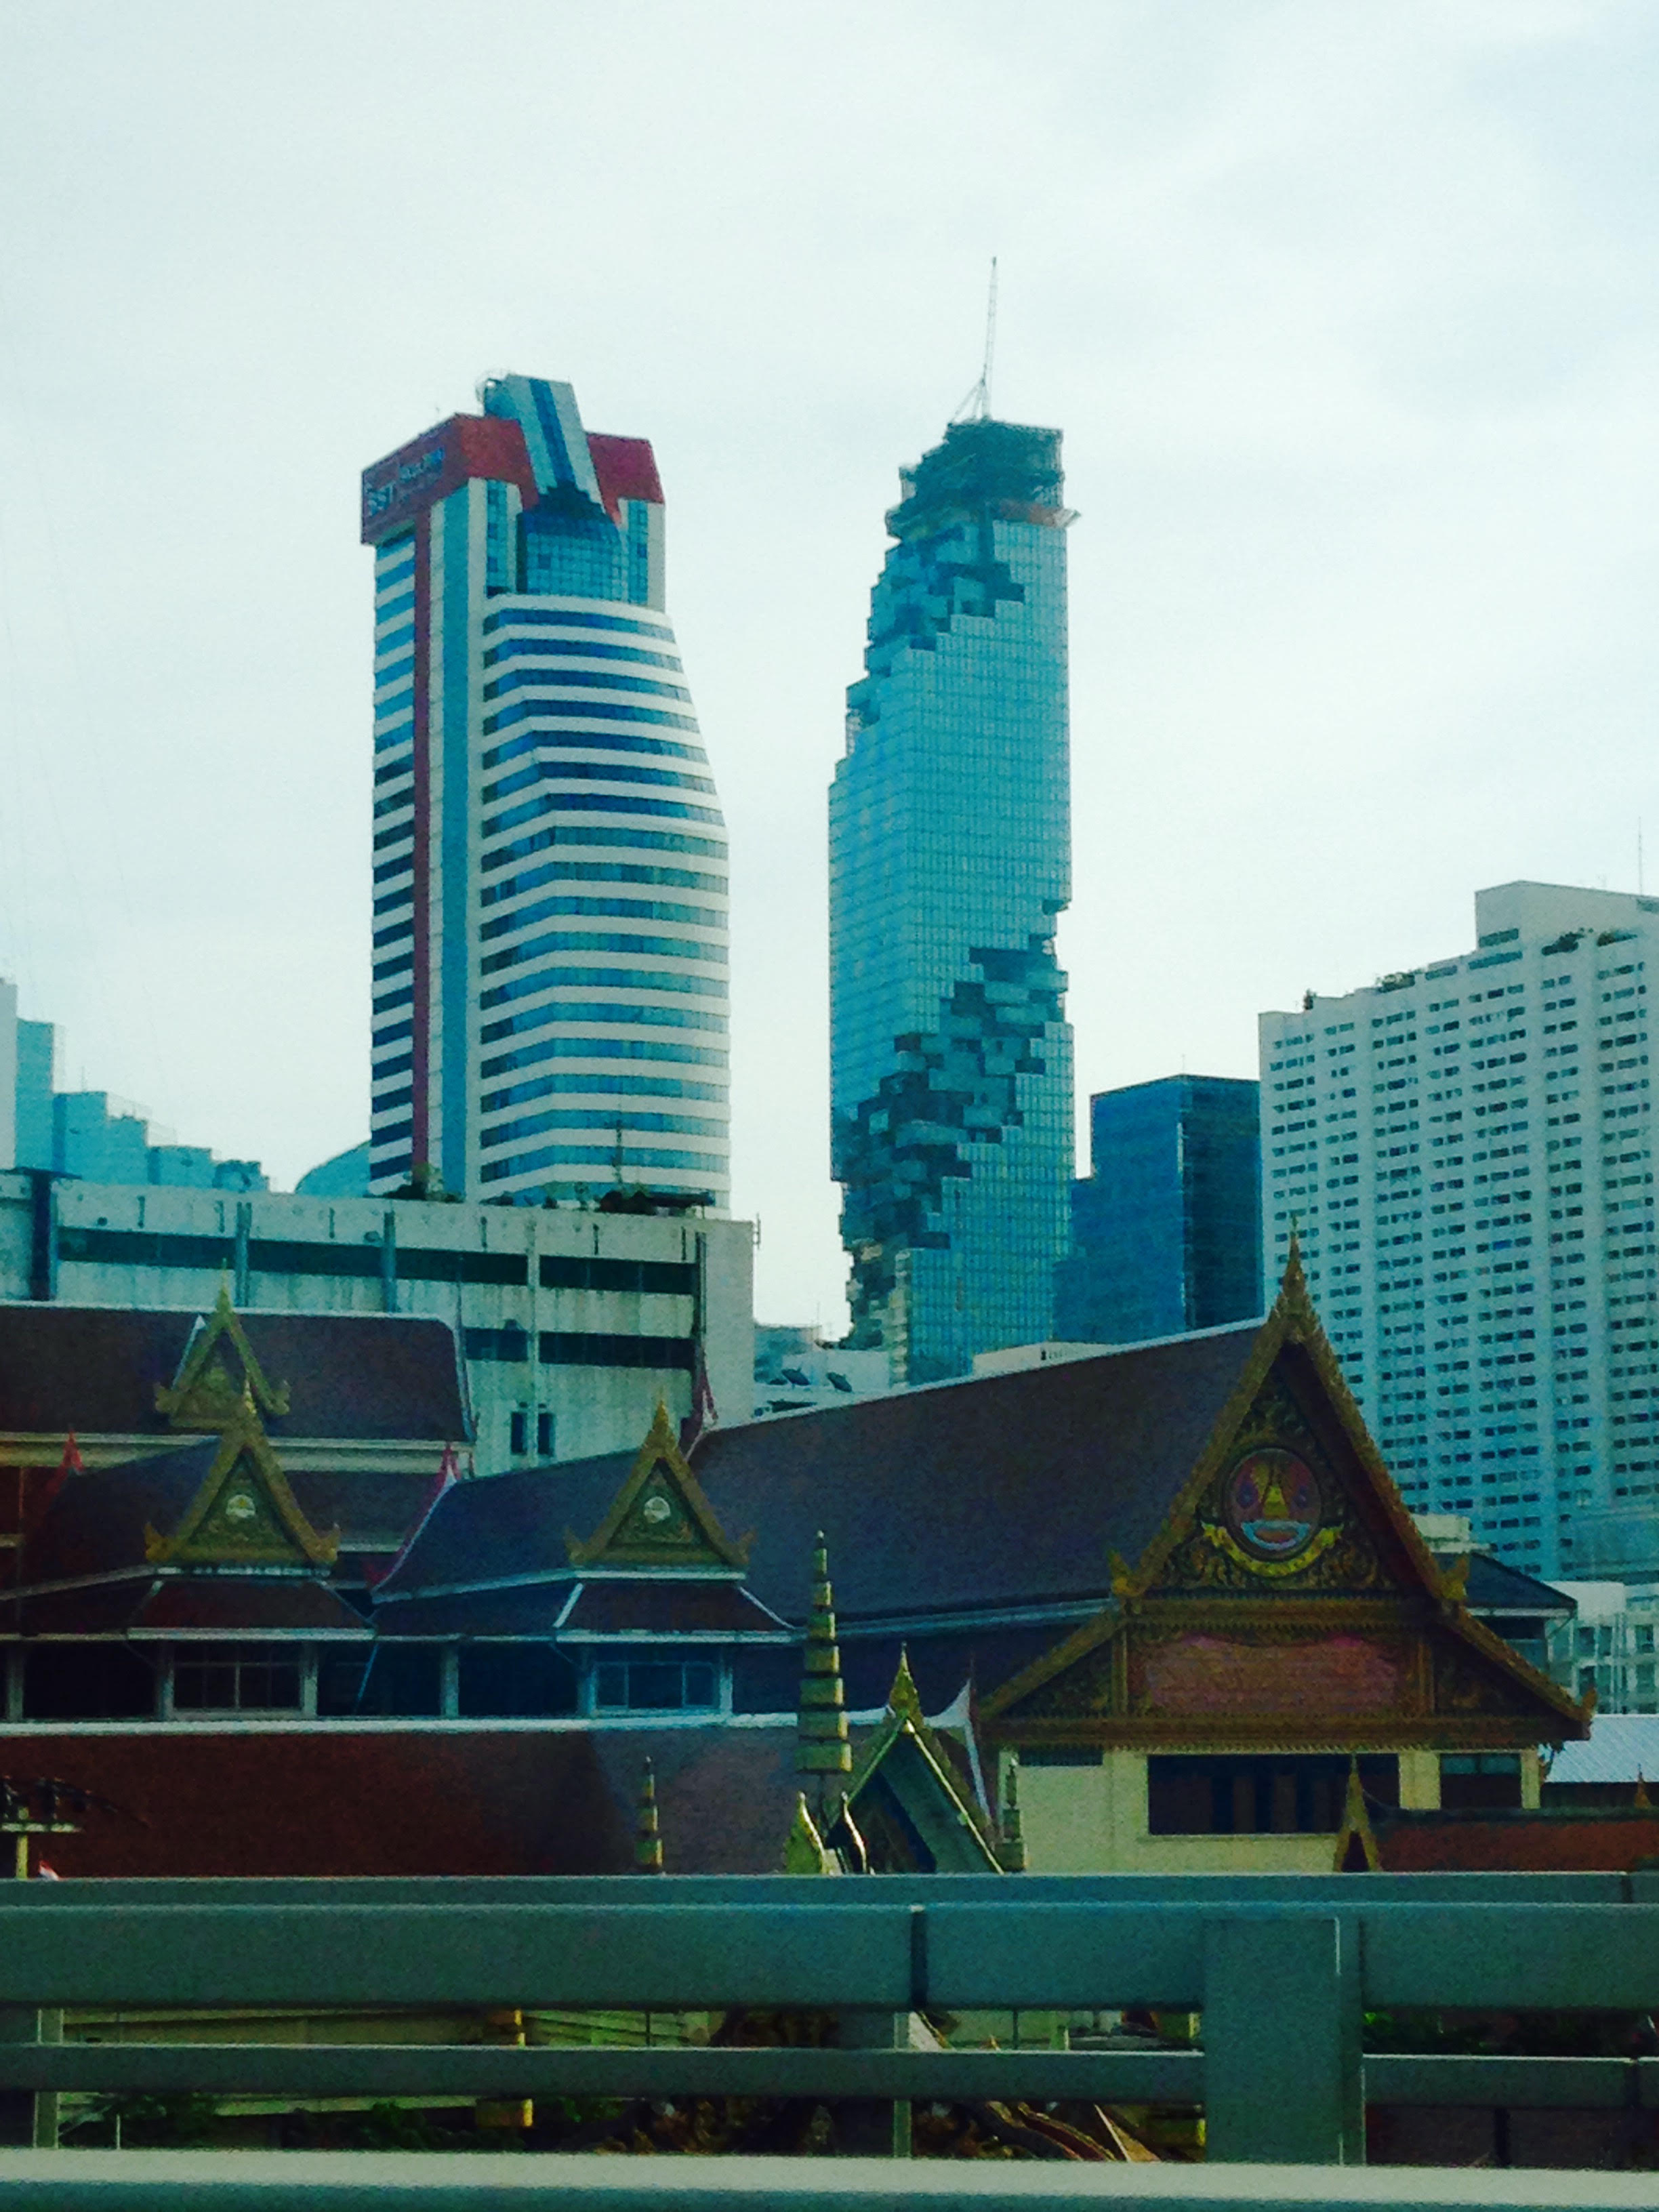 A_Buddhist_temple_and_Bkk's_tallest_skyscraper_-_12-18-15.jpeg